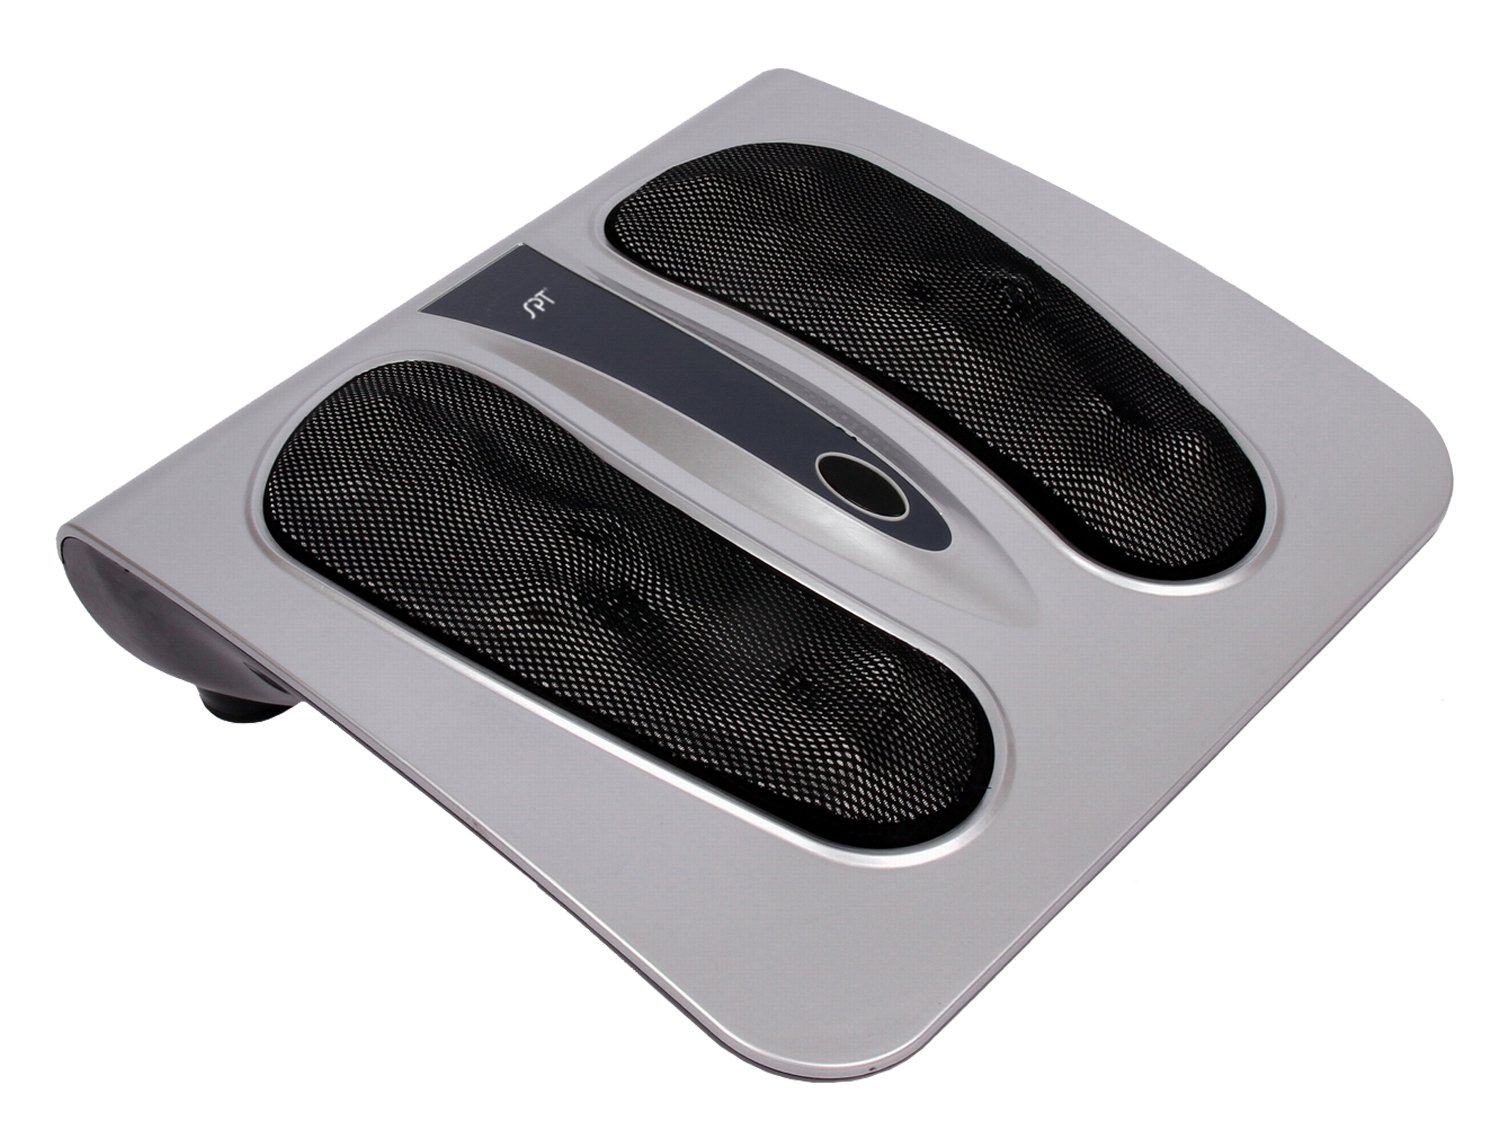 SPT AB-764 Deep Kneading Shiatsu Foot Massager with Infrared, Silver/Black